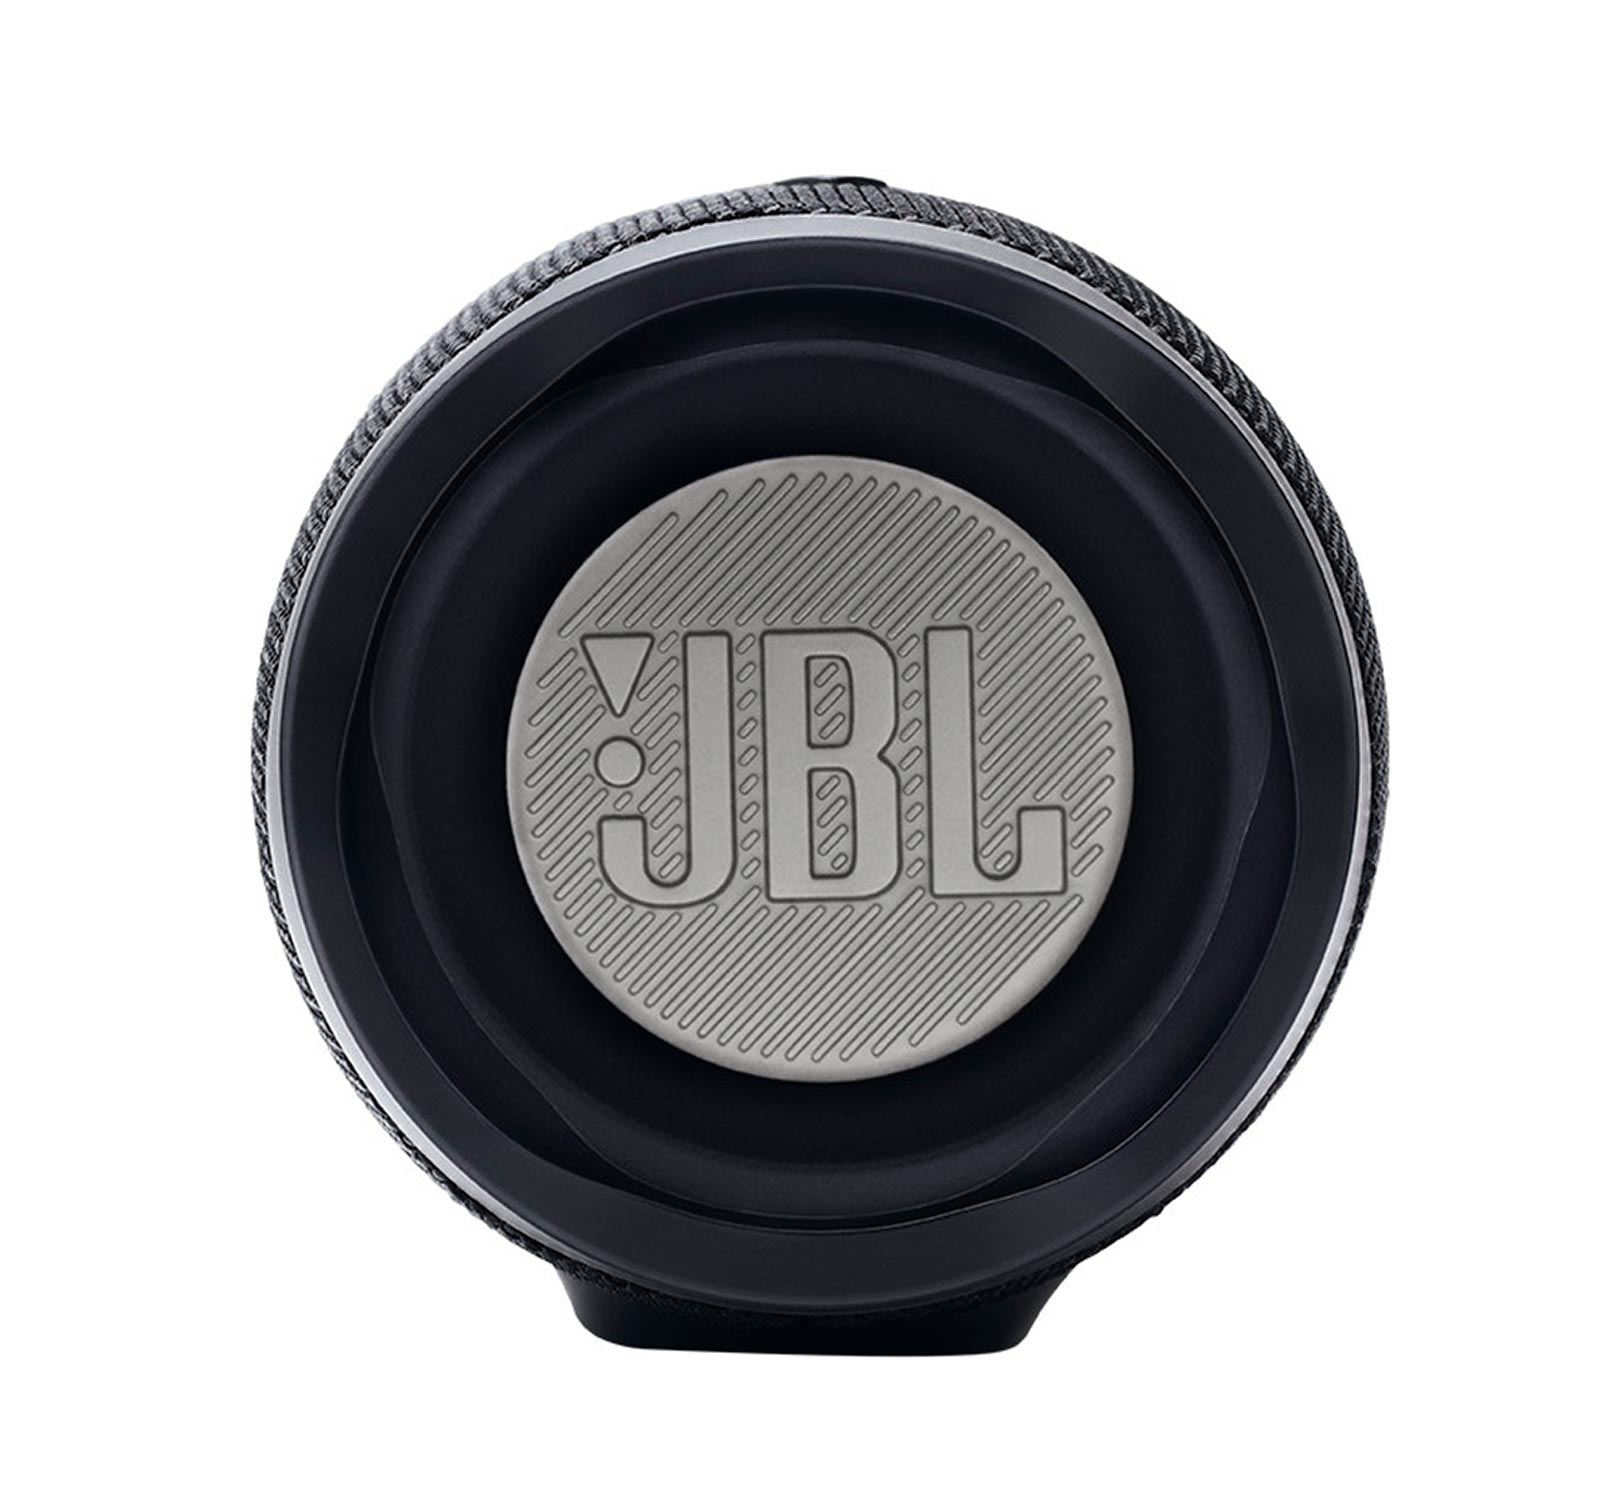 JBL-Charge-4-Portable-Bluetooth-Speaker thumbnail 3